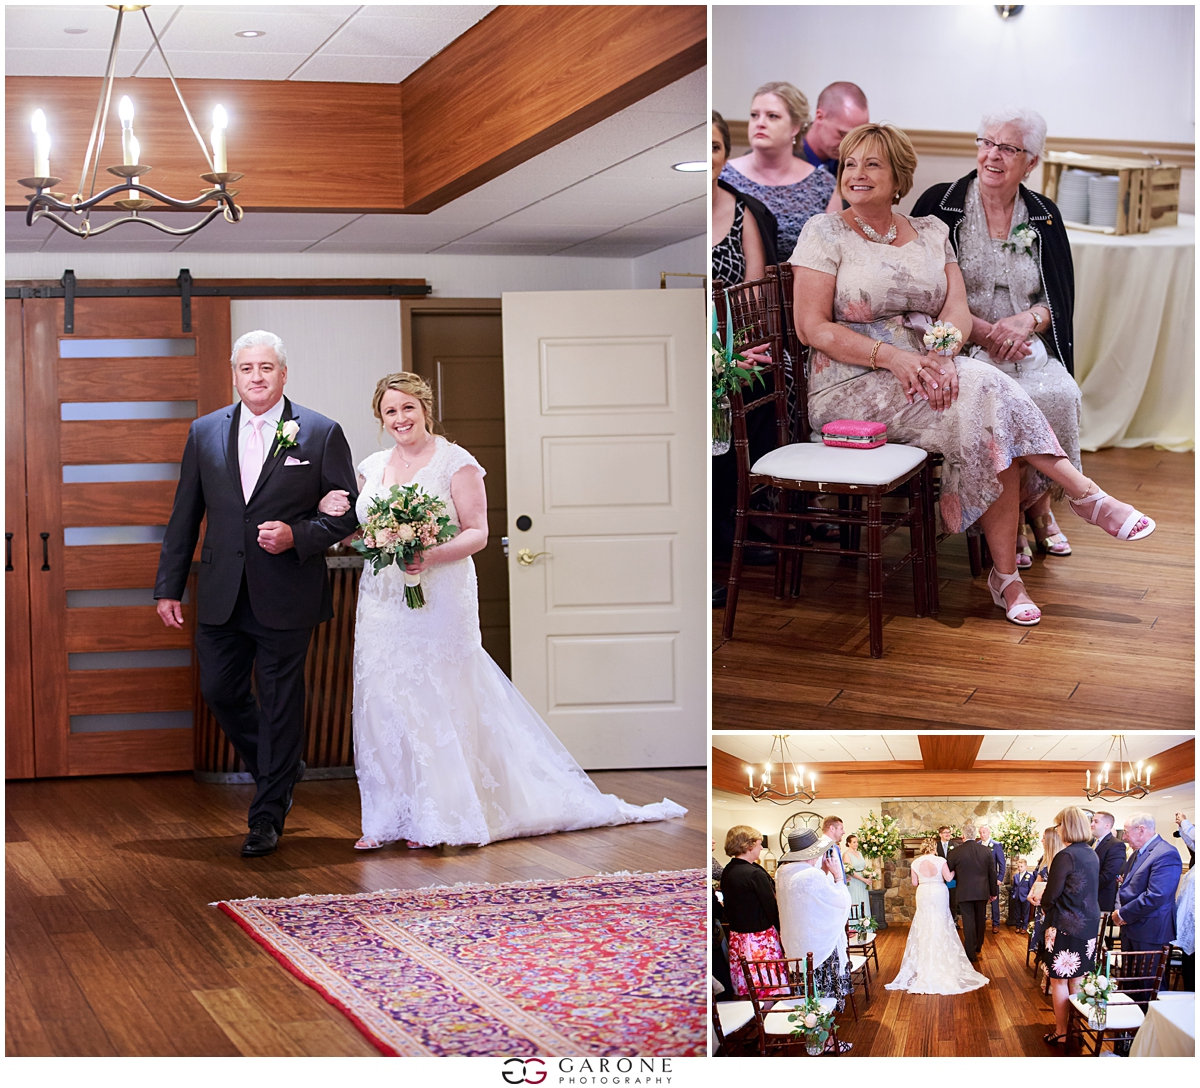 Melissa_Andy_The_Grand_Bedford_Village_Inn_Nh_Wedding_Photography_0025.jpg